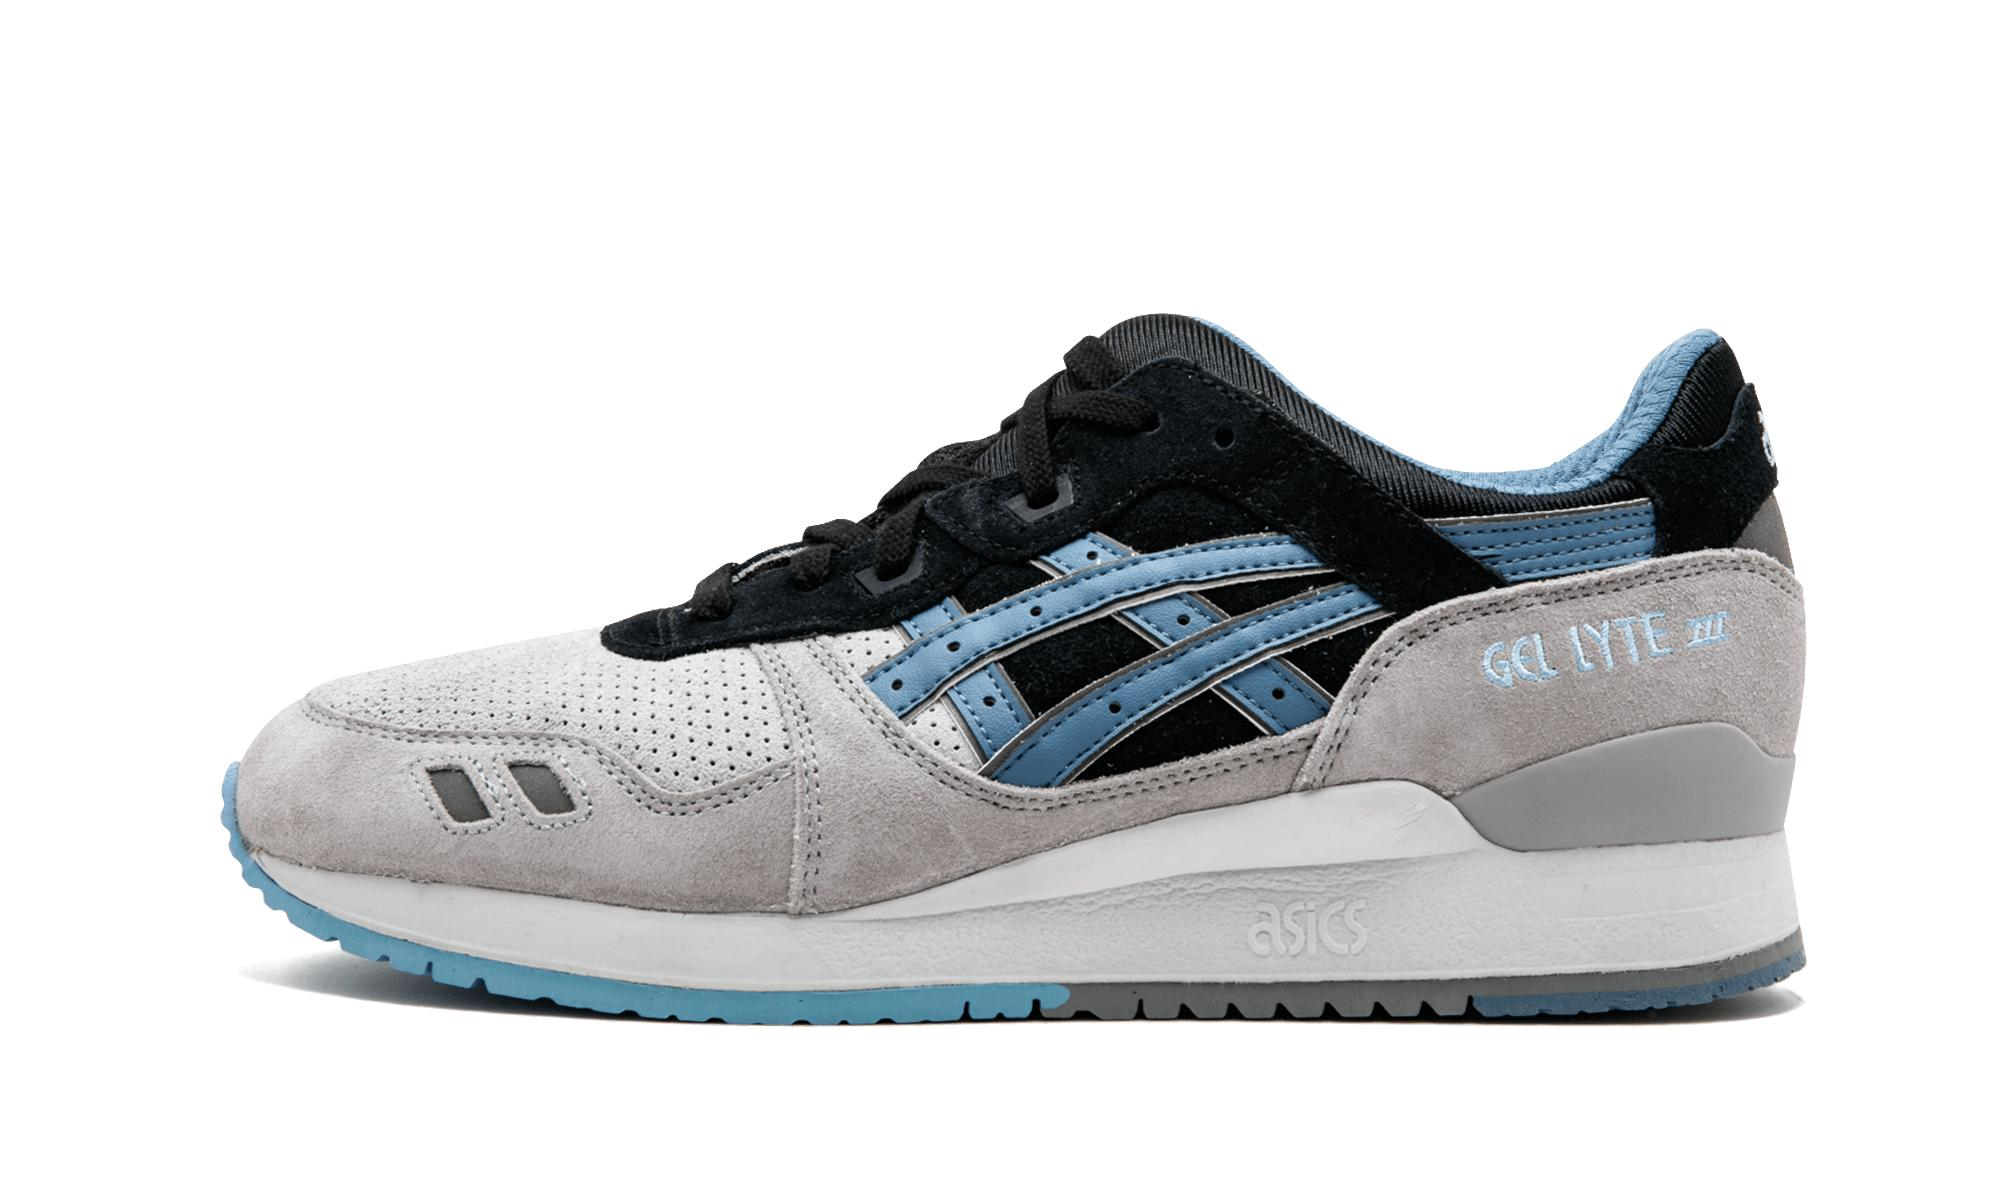 9e0f9602 Asics - Blue Gel-lyte Iii for Men - Lyst. View fullscreen